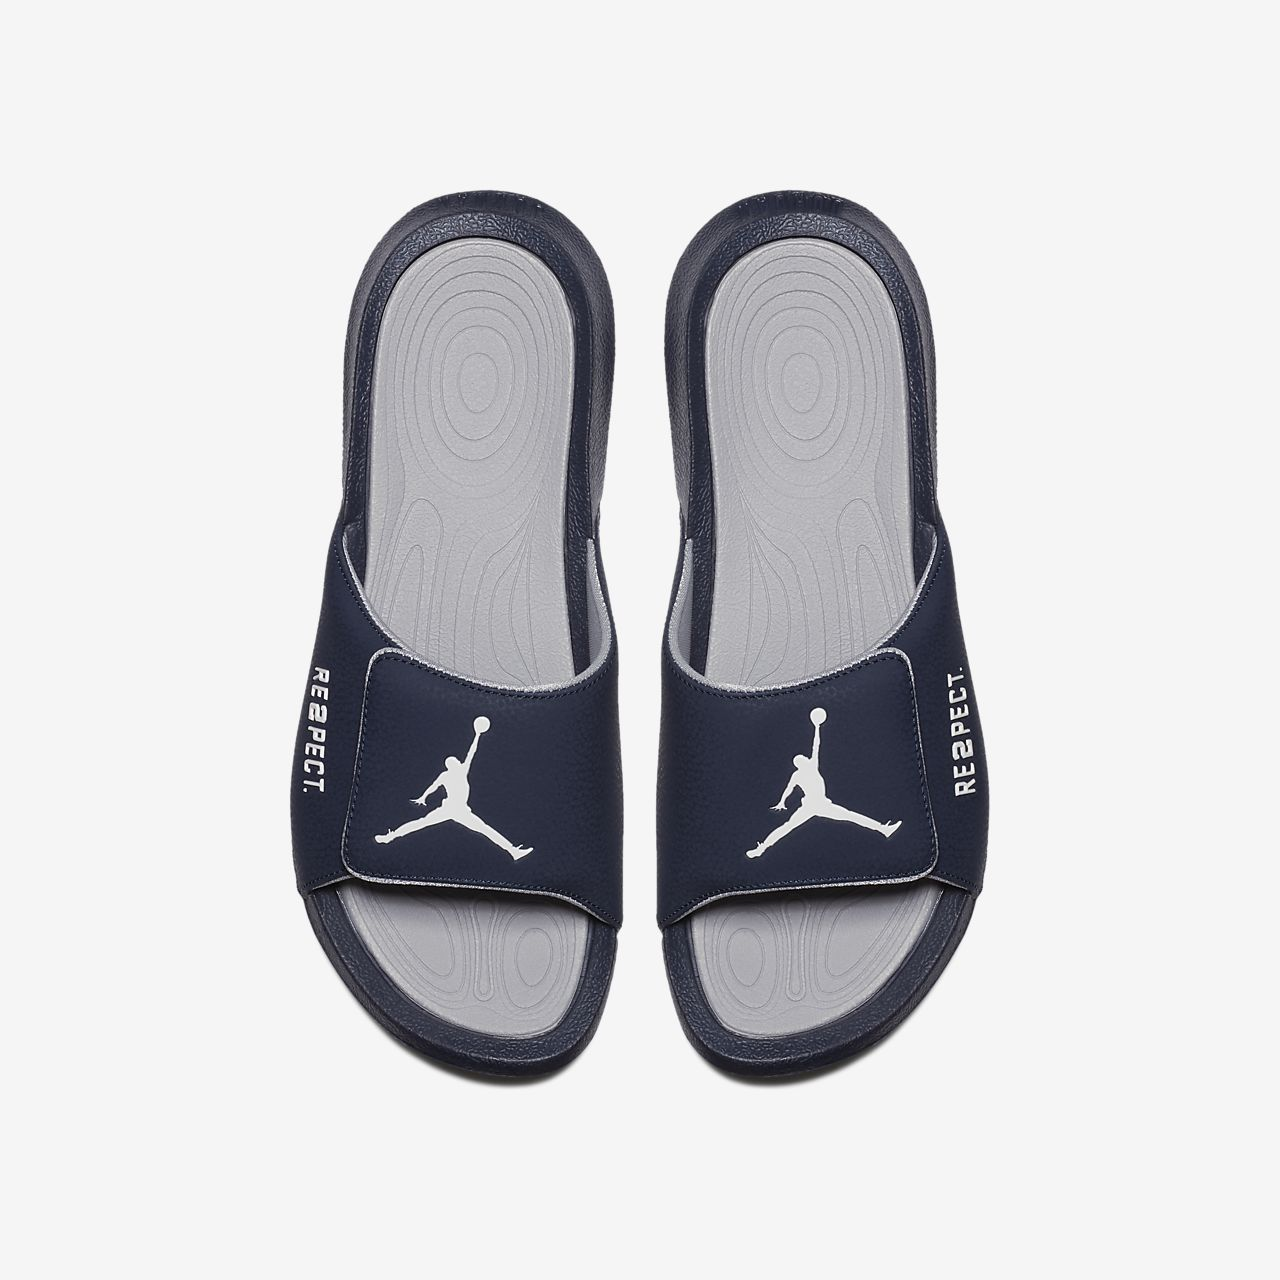 jordan slip on shoes